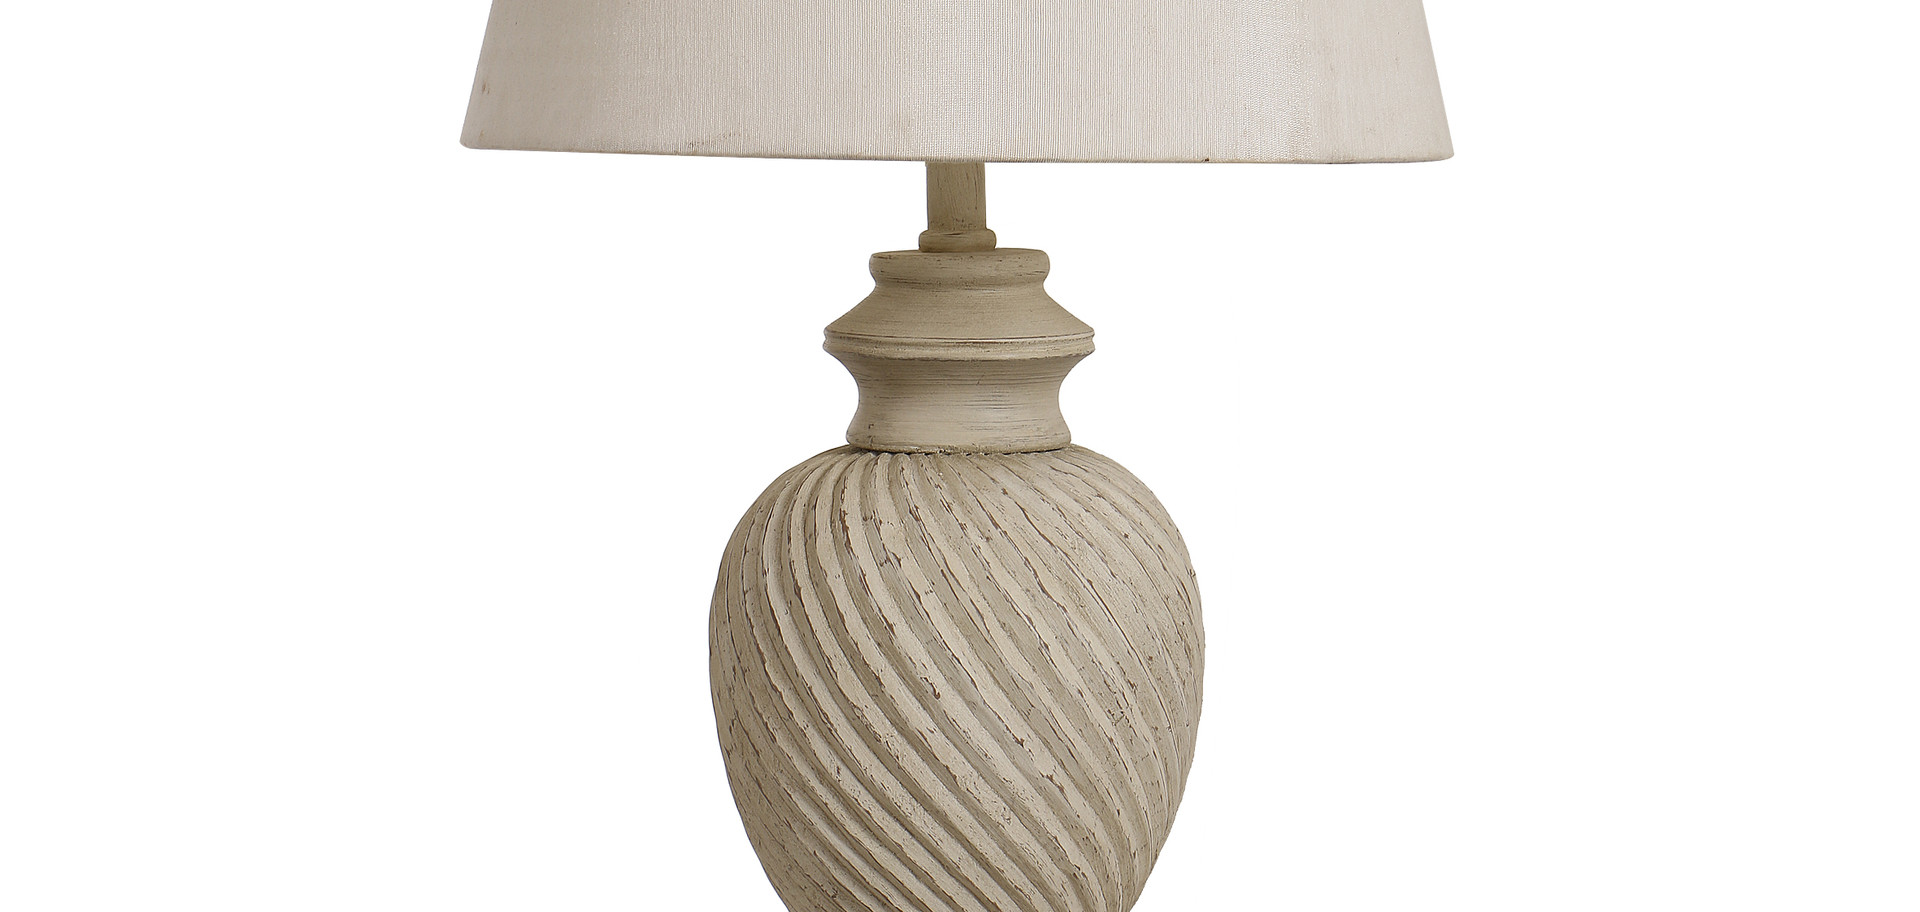 Timber lamp and shade.jpg